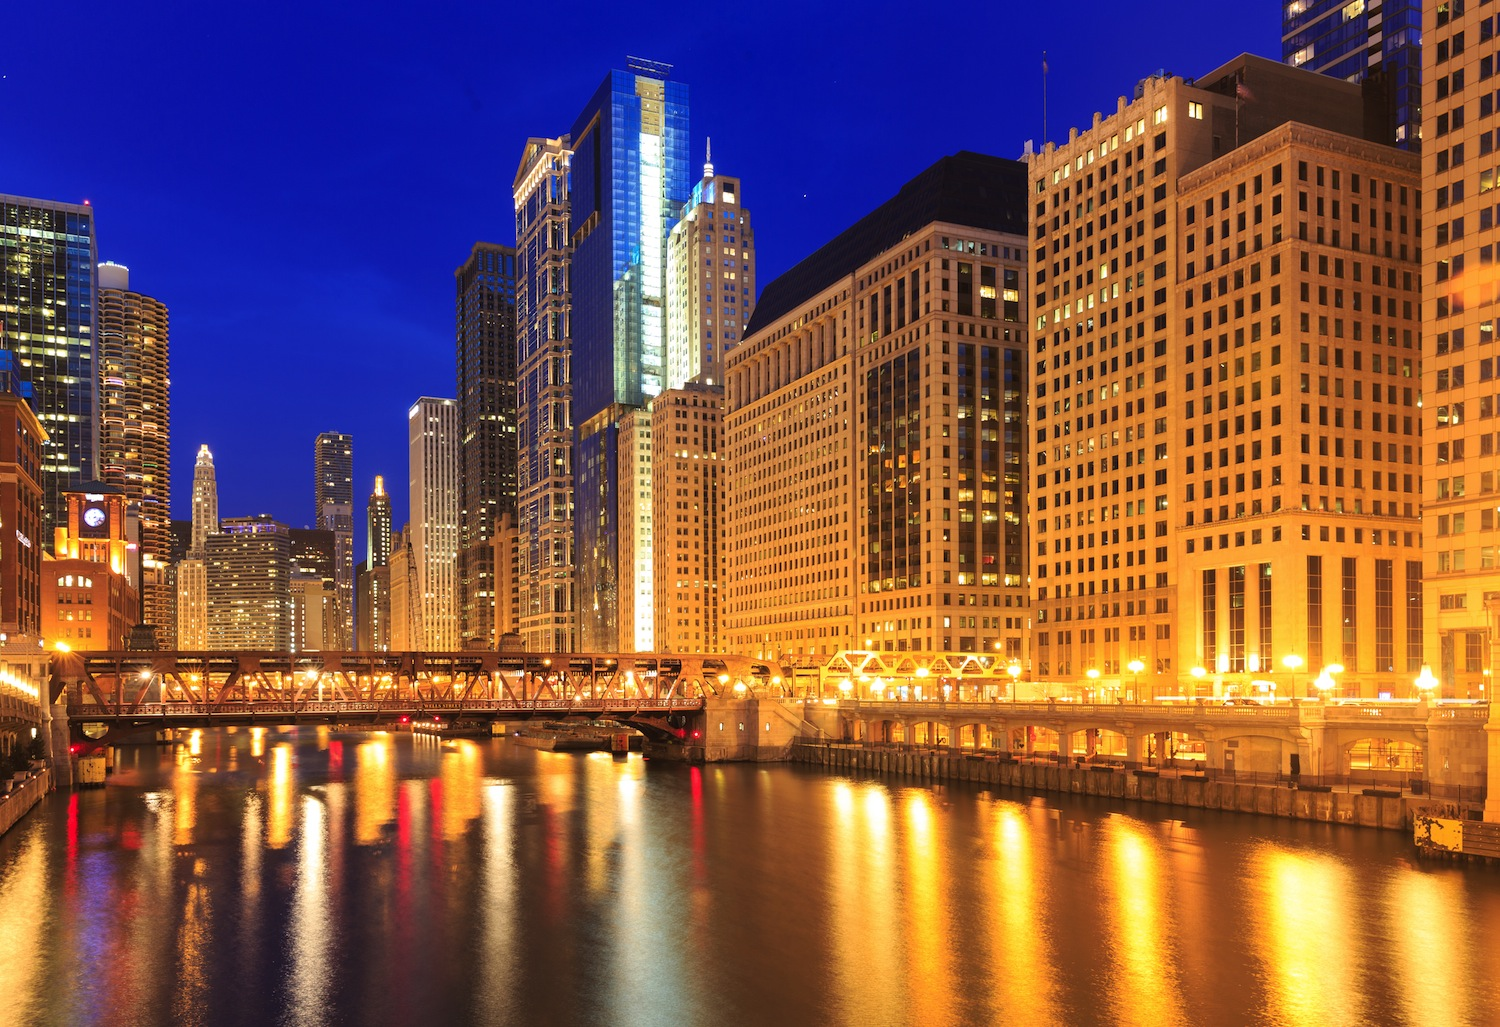 chicago-weird-tours-nighttime-architecture-tour